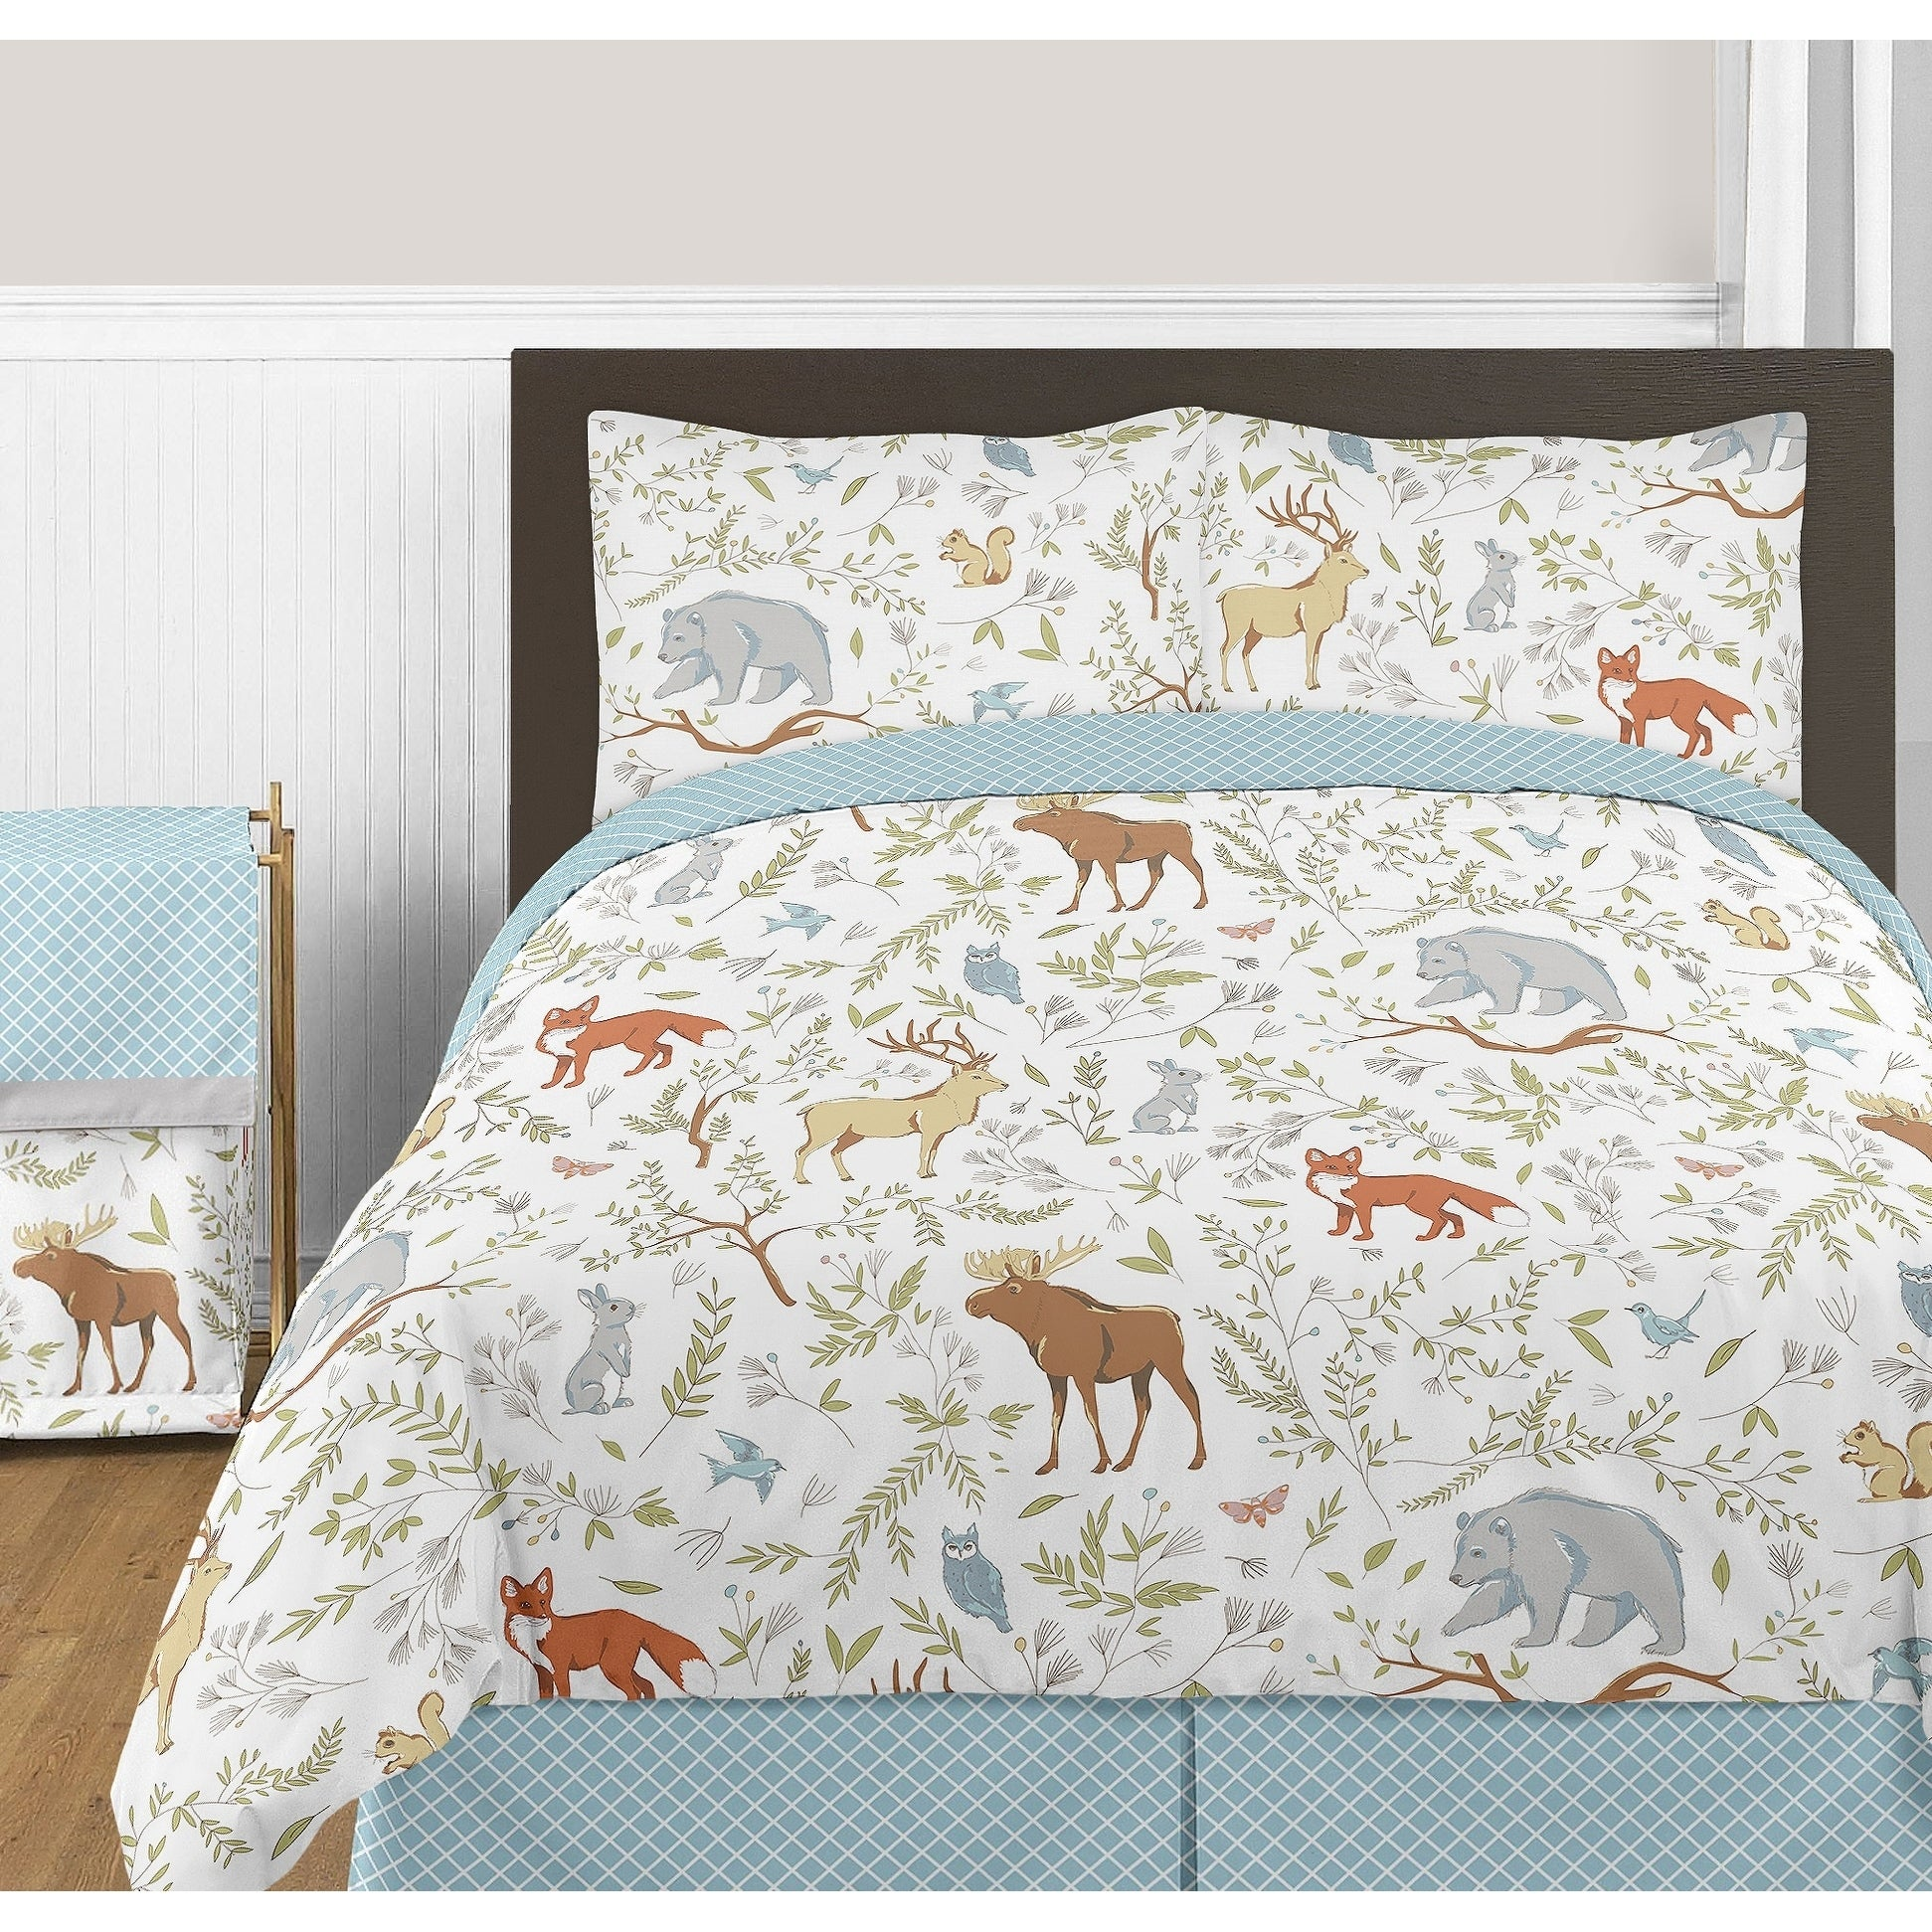 JoJo Designs Woodland Toile Collection Full/Queen 3-piece...